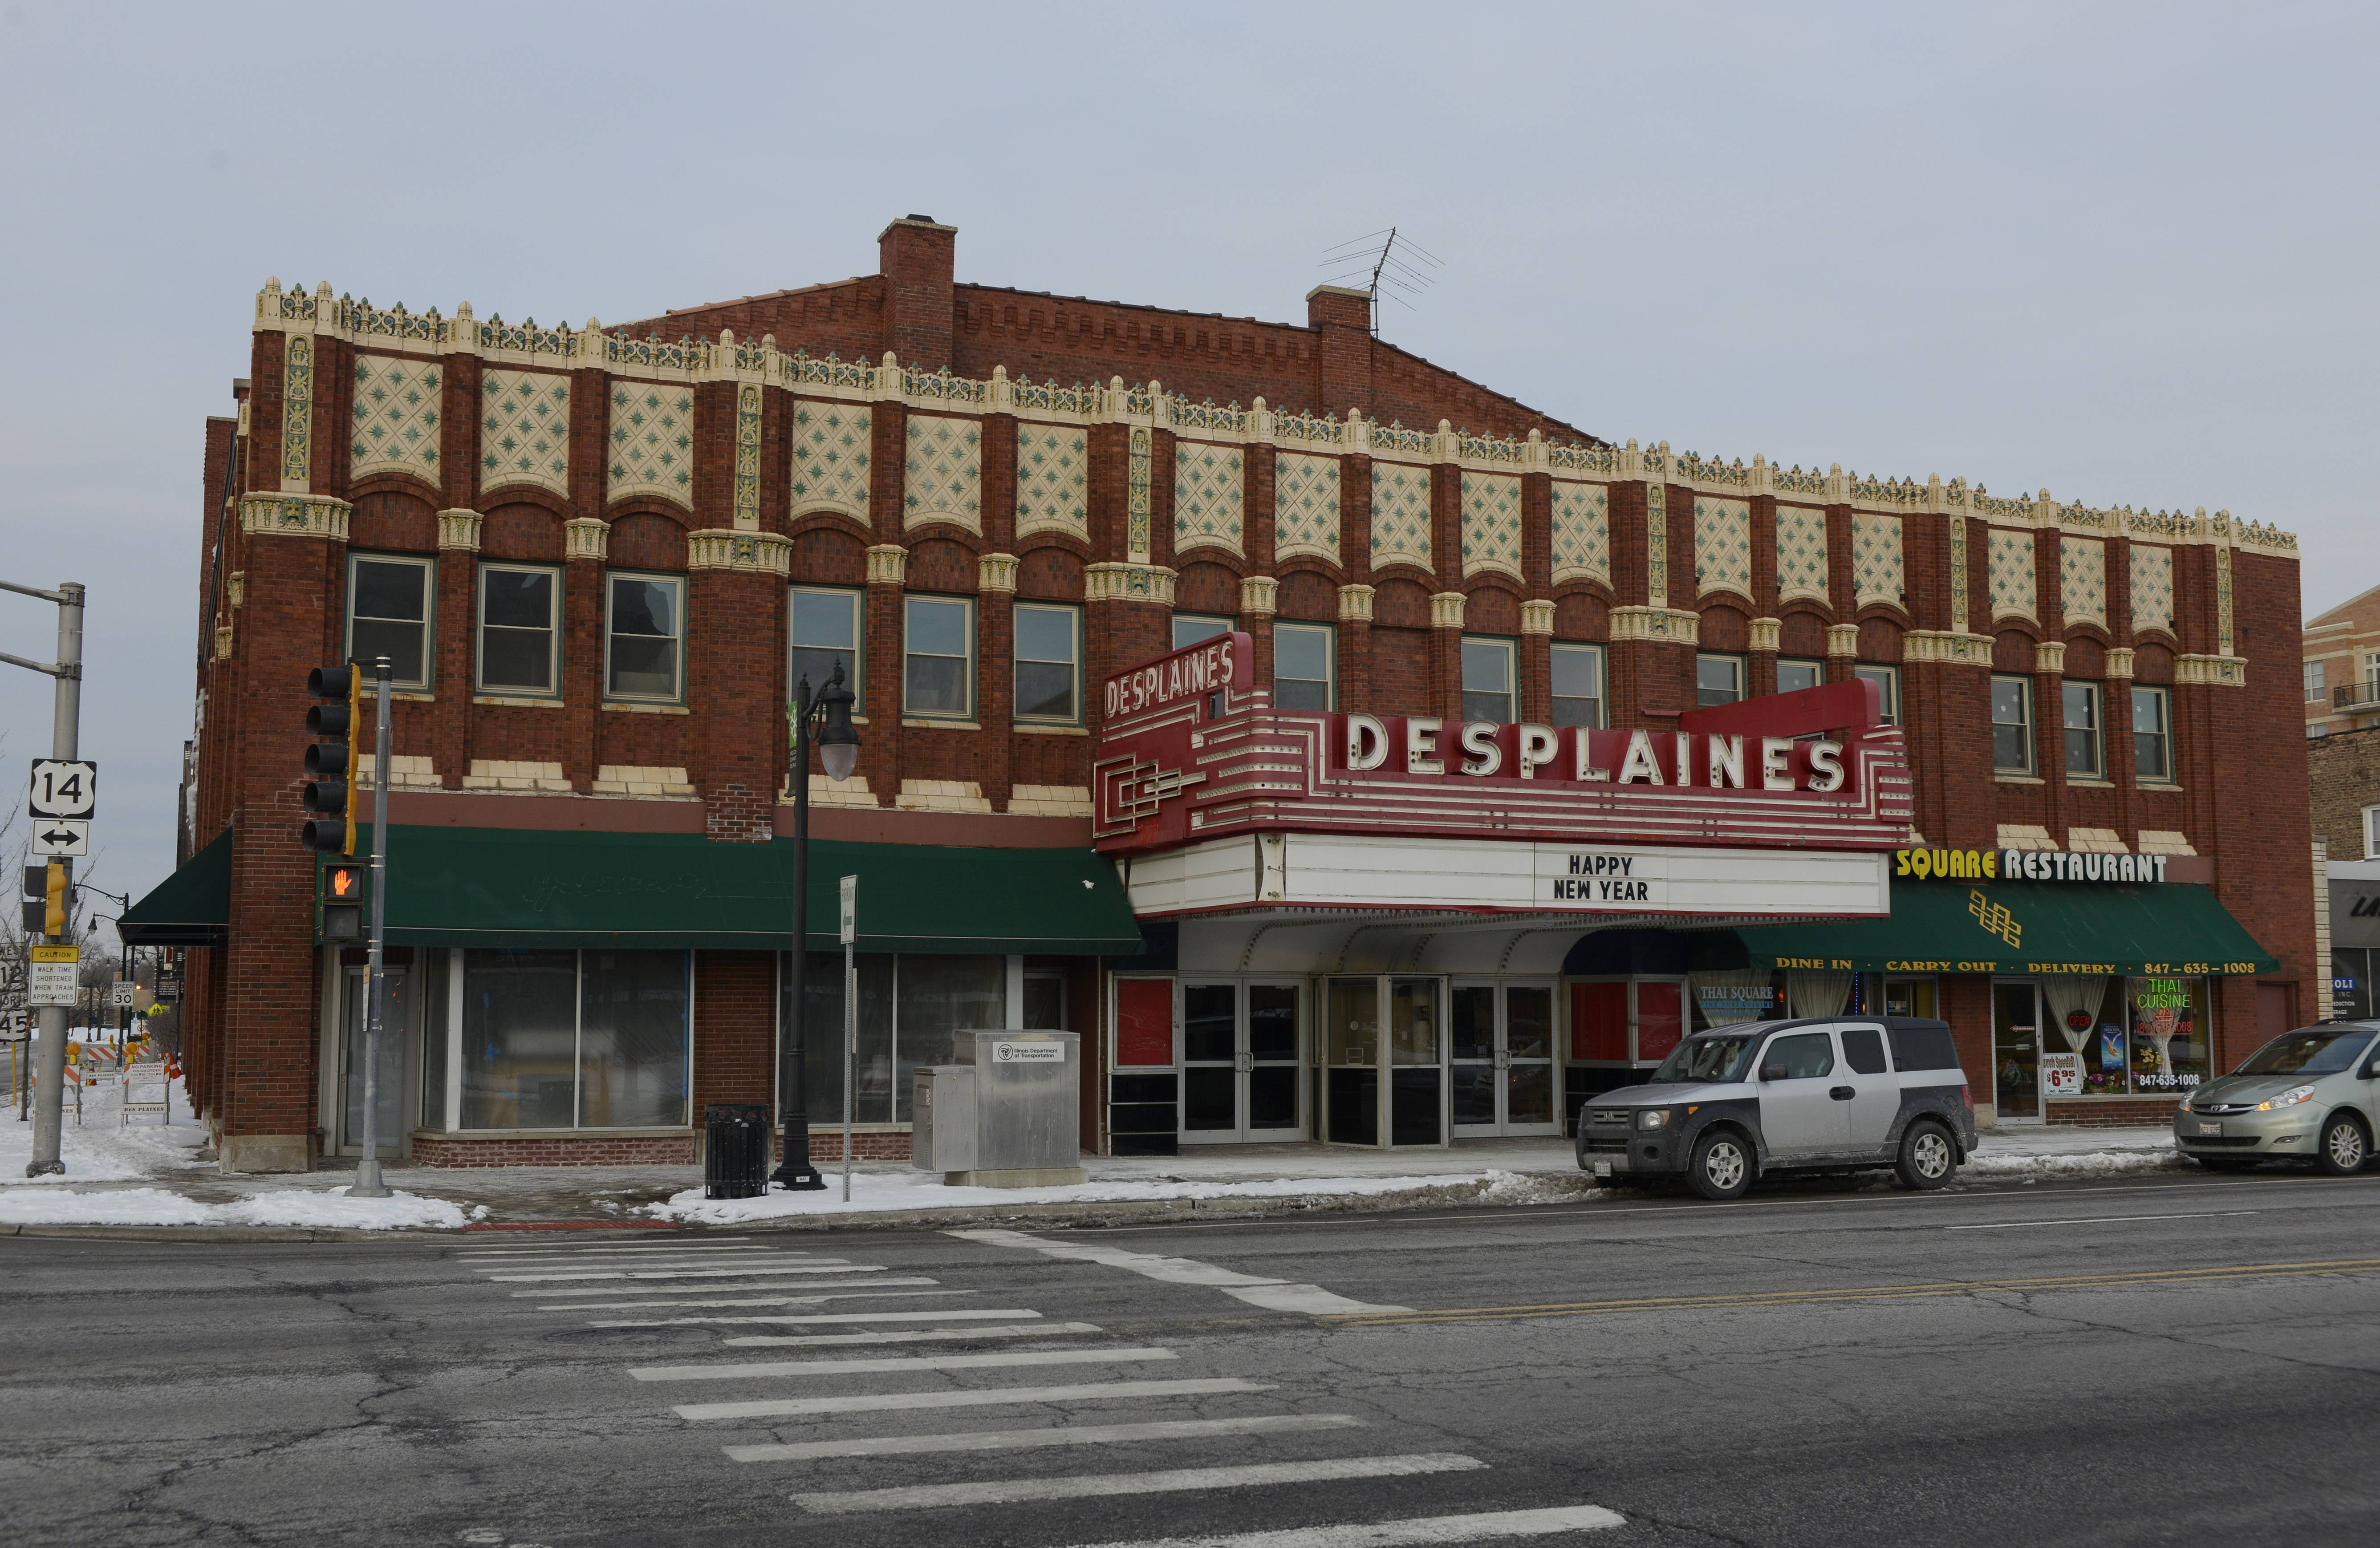 The city of Des Plaines is expected to send out a request for proposals to those who may be interested in operating or purchasing the now-shuttered Des Plaines Theatre.